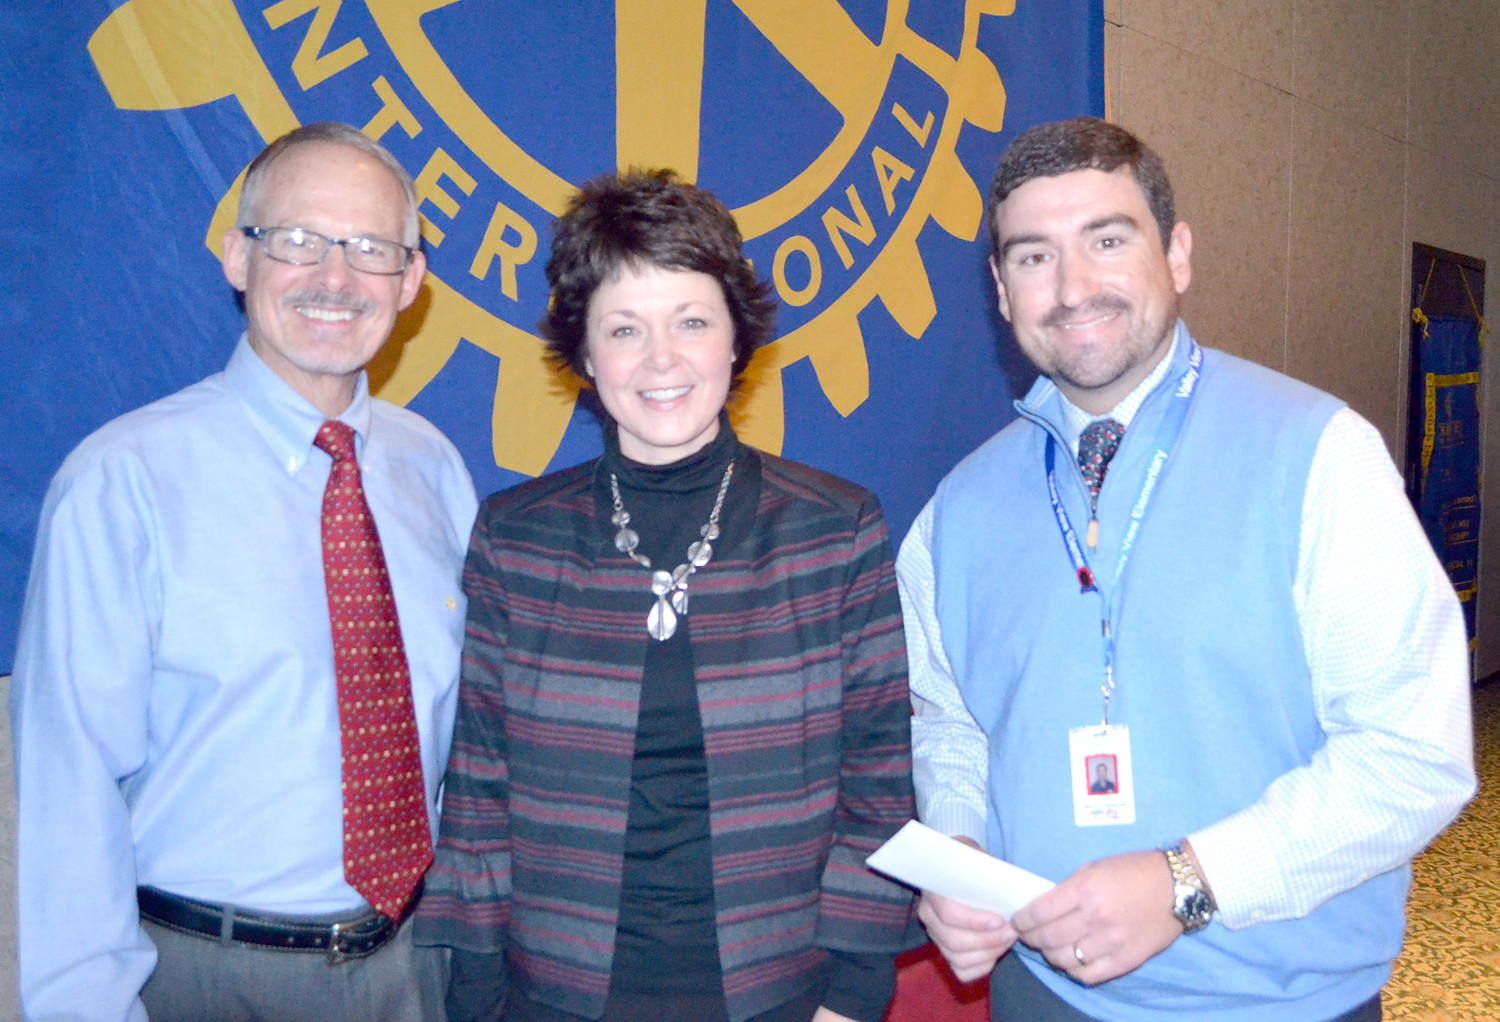 DR. PAUL MCCORD, left, presents a grant from the Rotary Club of Cleveland to Stephanie Jones, center, and Corey Limburg of Valley View Elementary School.